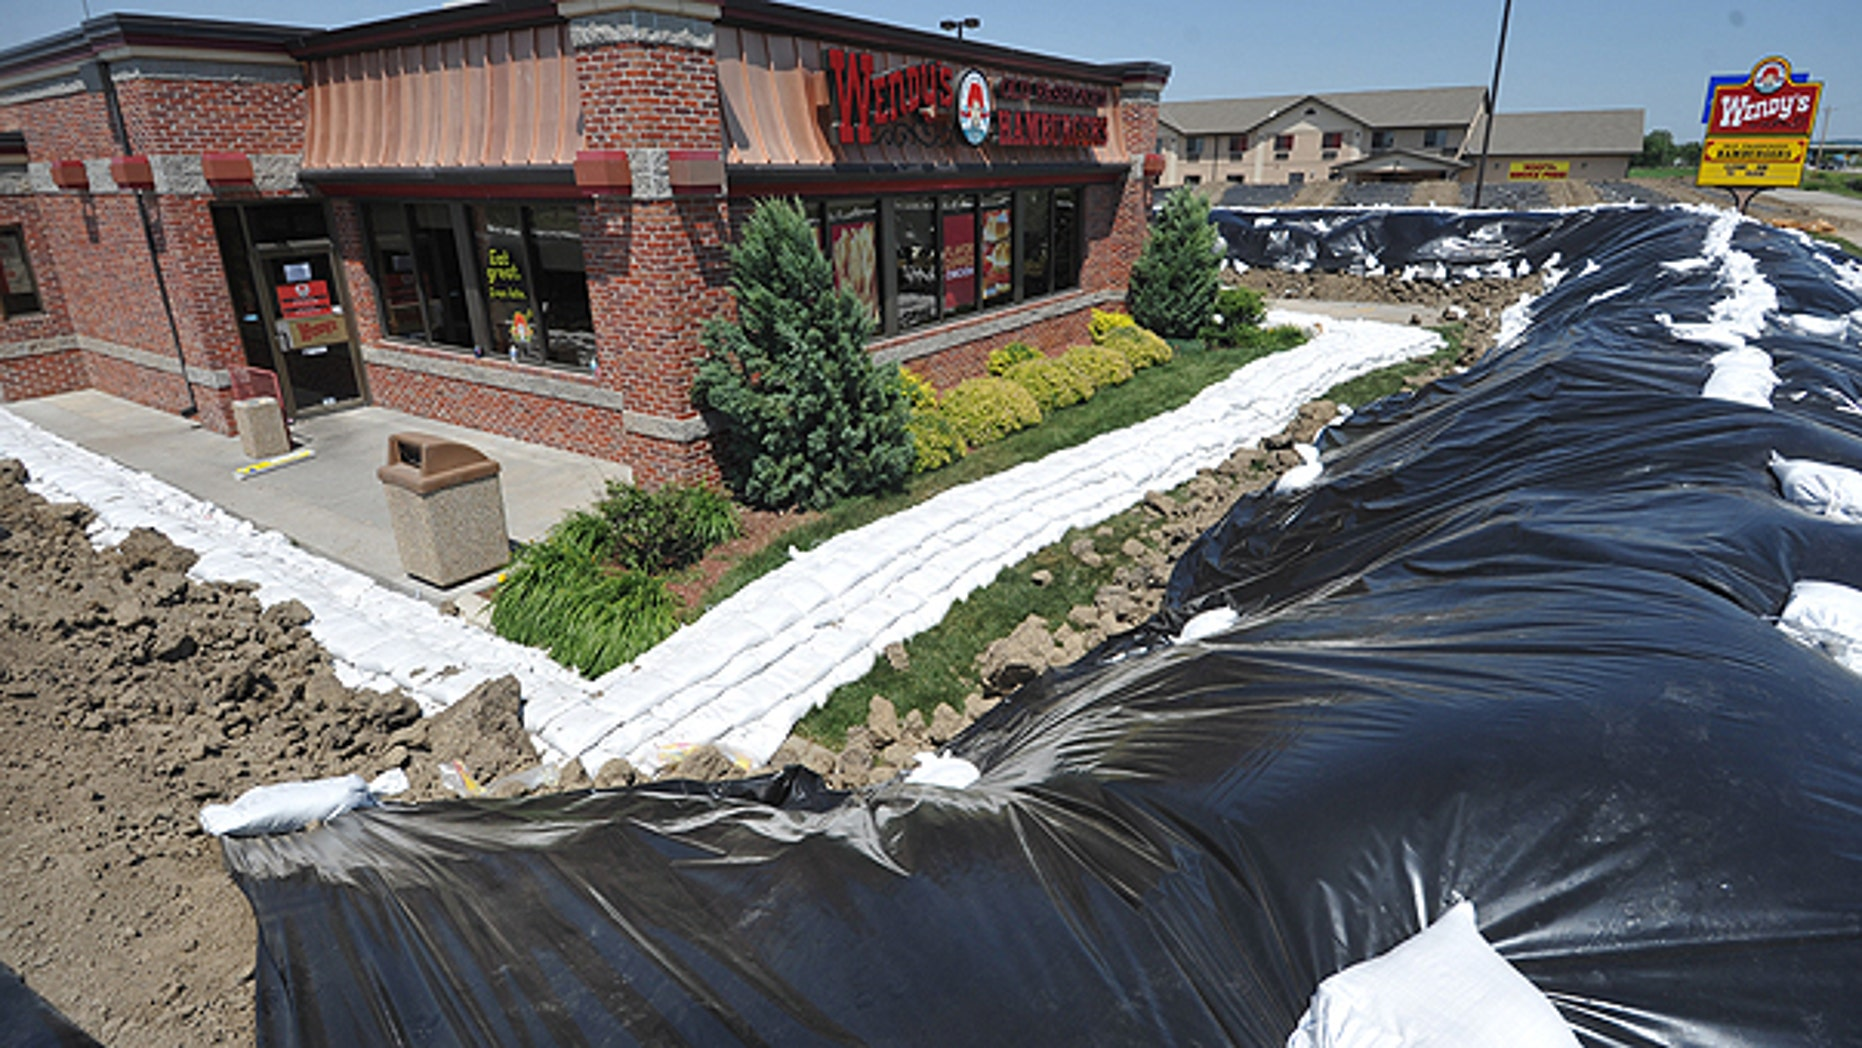 June 6: A Wendy's restaurant is surrounded by a temporary berm in Hamburg, Iowa.